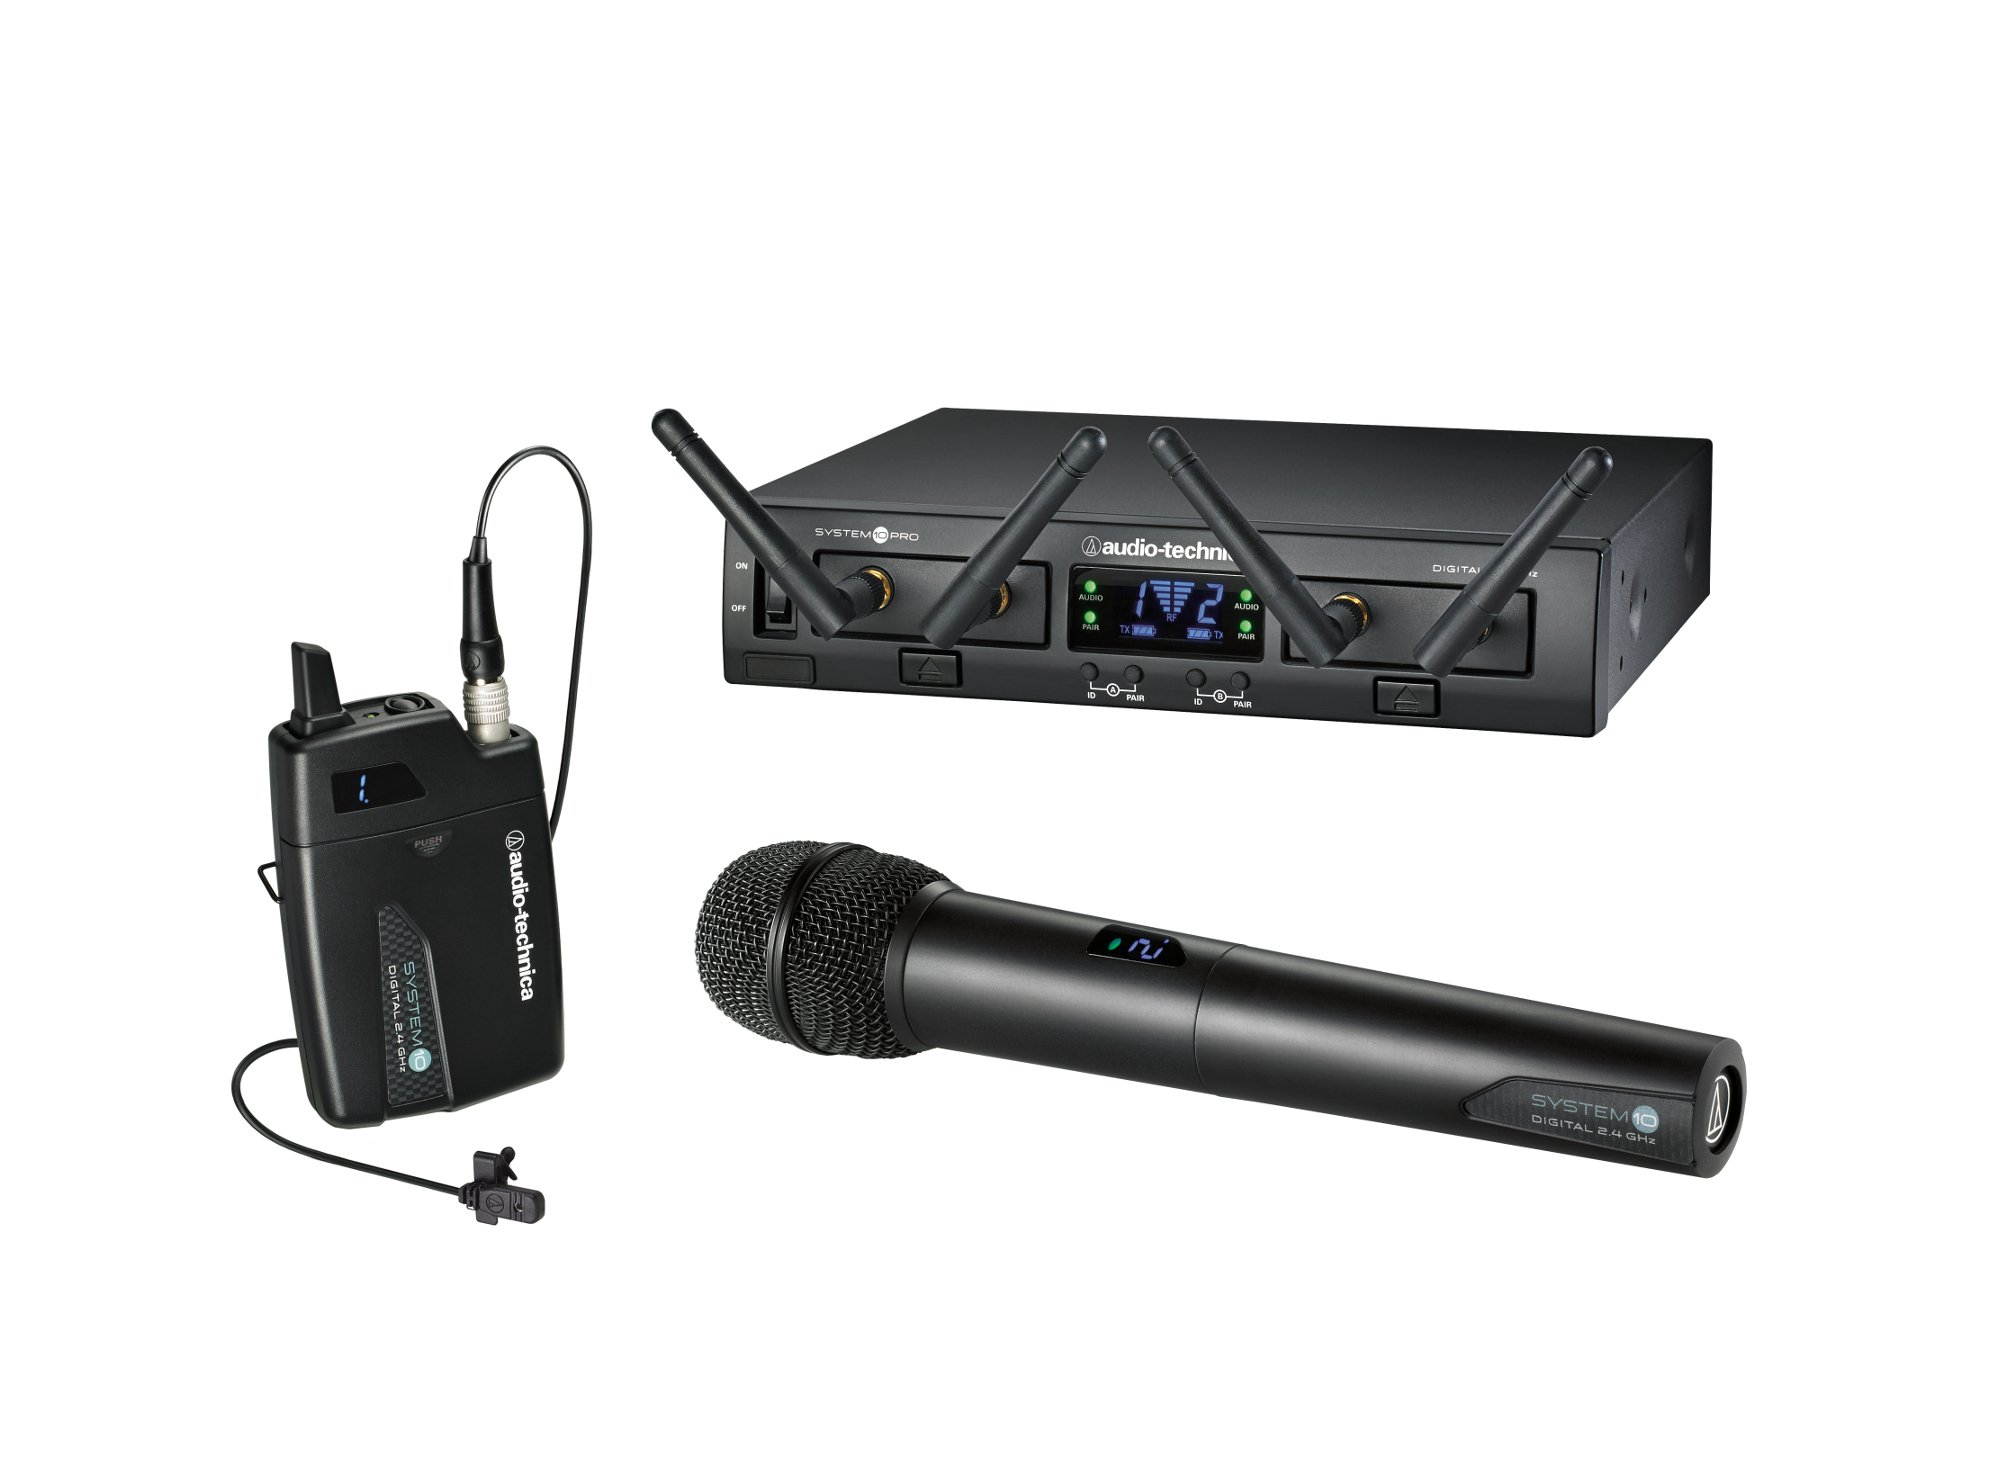 System 10 PRO Rackmount Dual-Channel Digital Wireless System with (1) ATW-T1001 Bodypack Transmitter, (1) MT830cW Lavalier Mic and (1) ATW-T1002 Handheld Mic/Transmitter